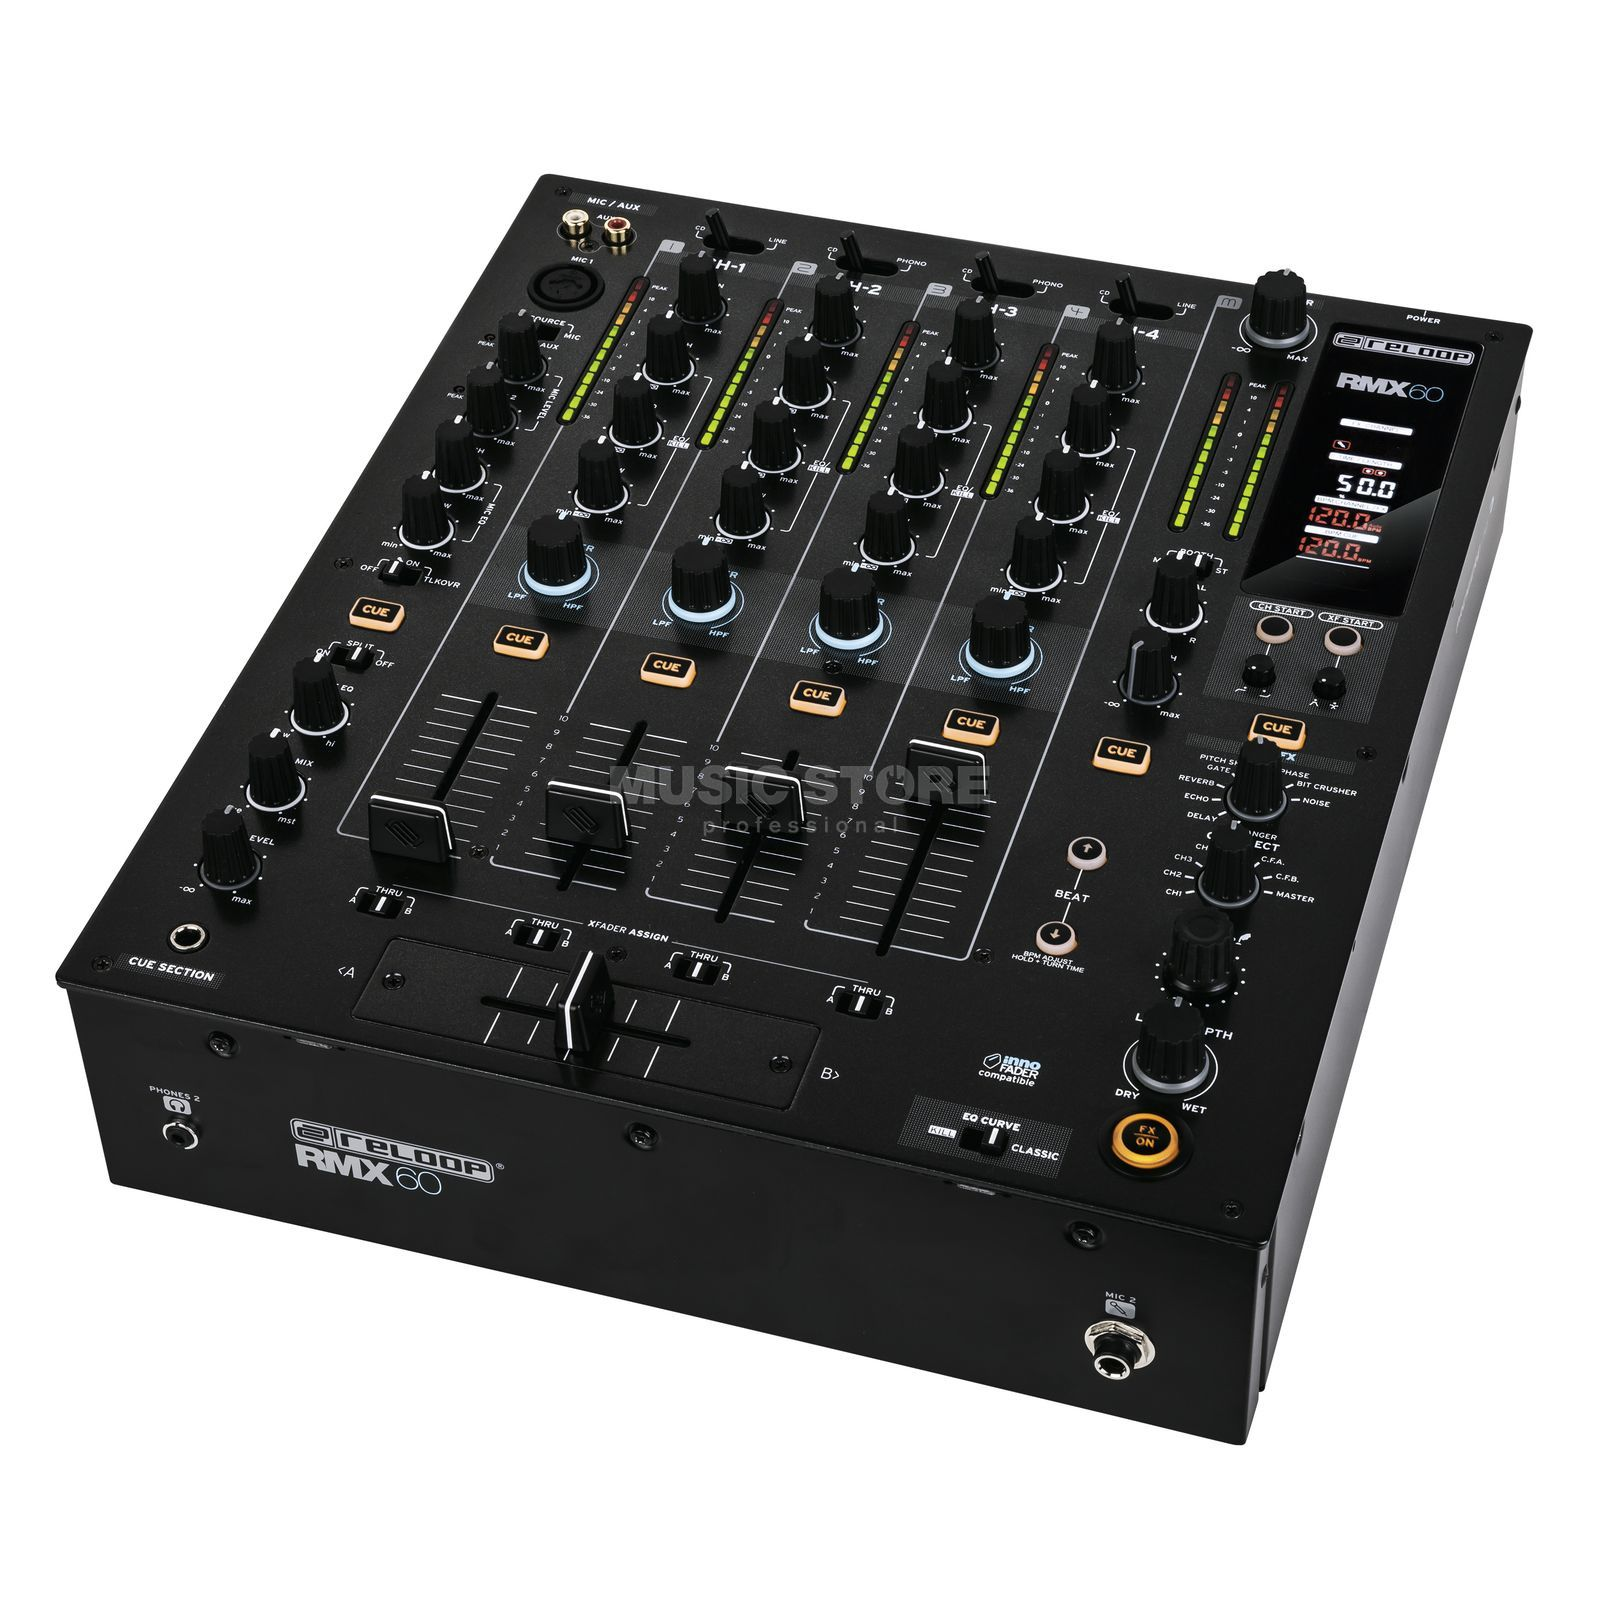 Reloop RMX-60 Digital Performance Club Mixer Image du produit